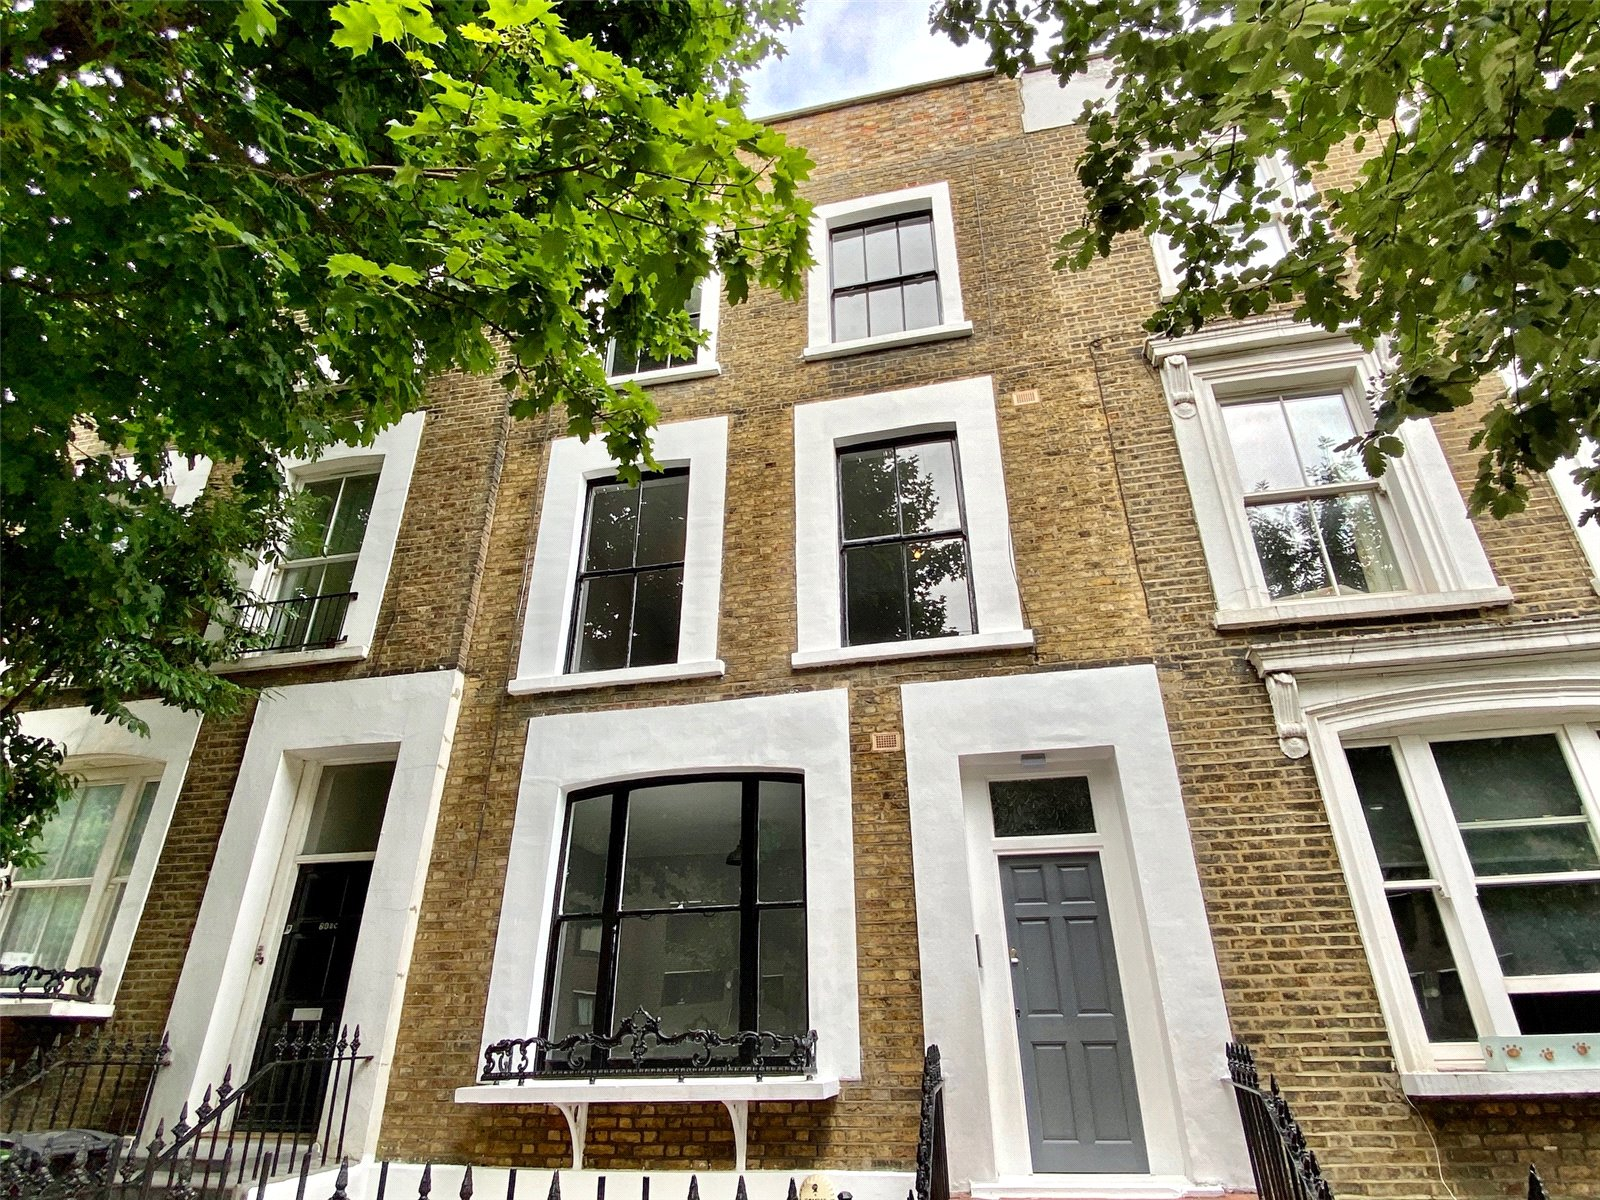 3 bed apartment for sale in Kentish Town, NW5 4DA  - Property Image 1